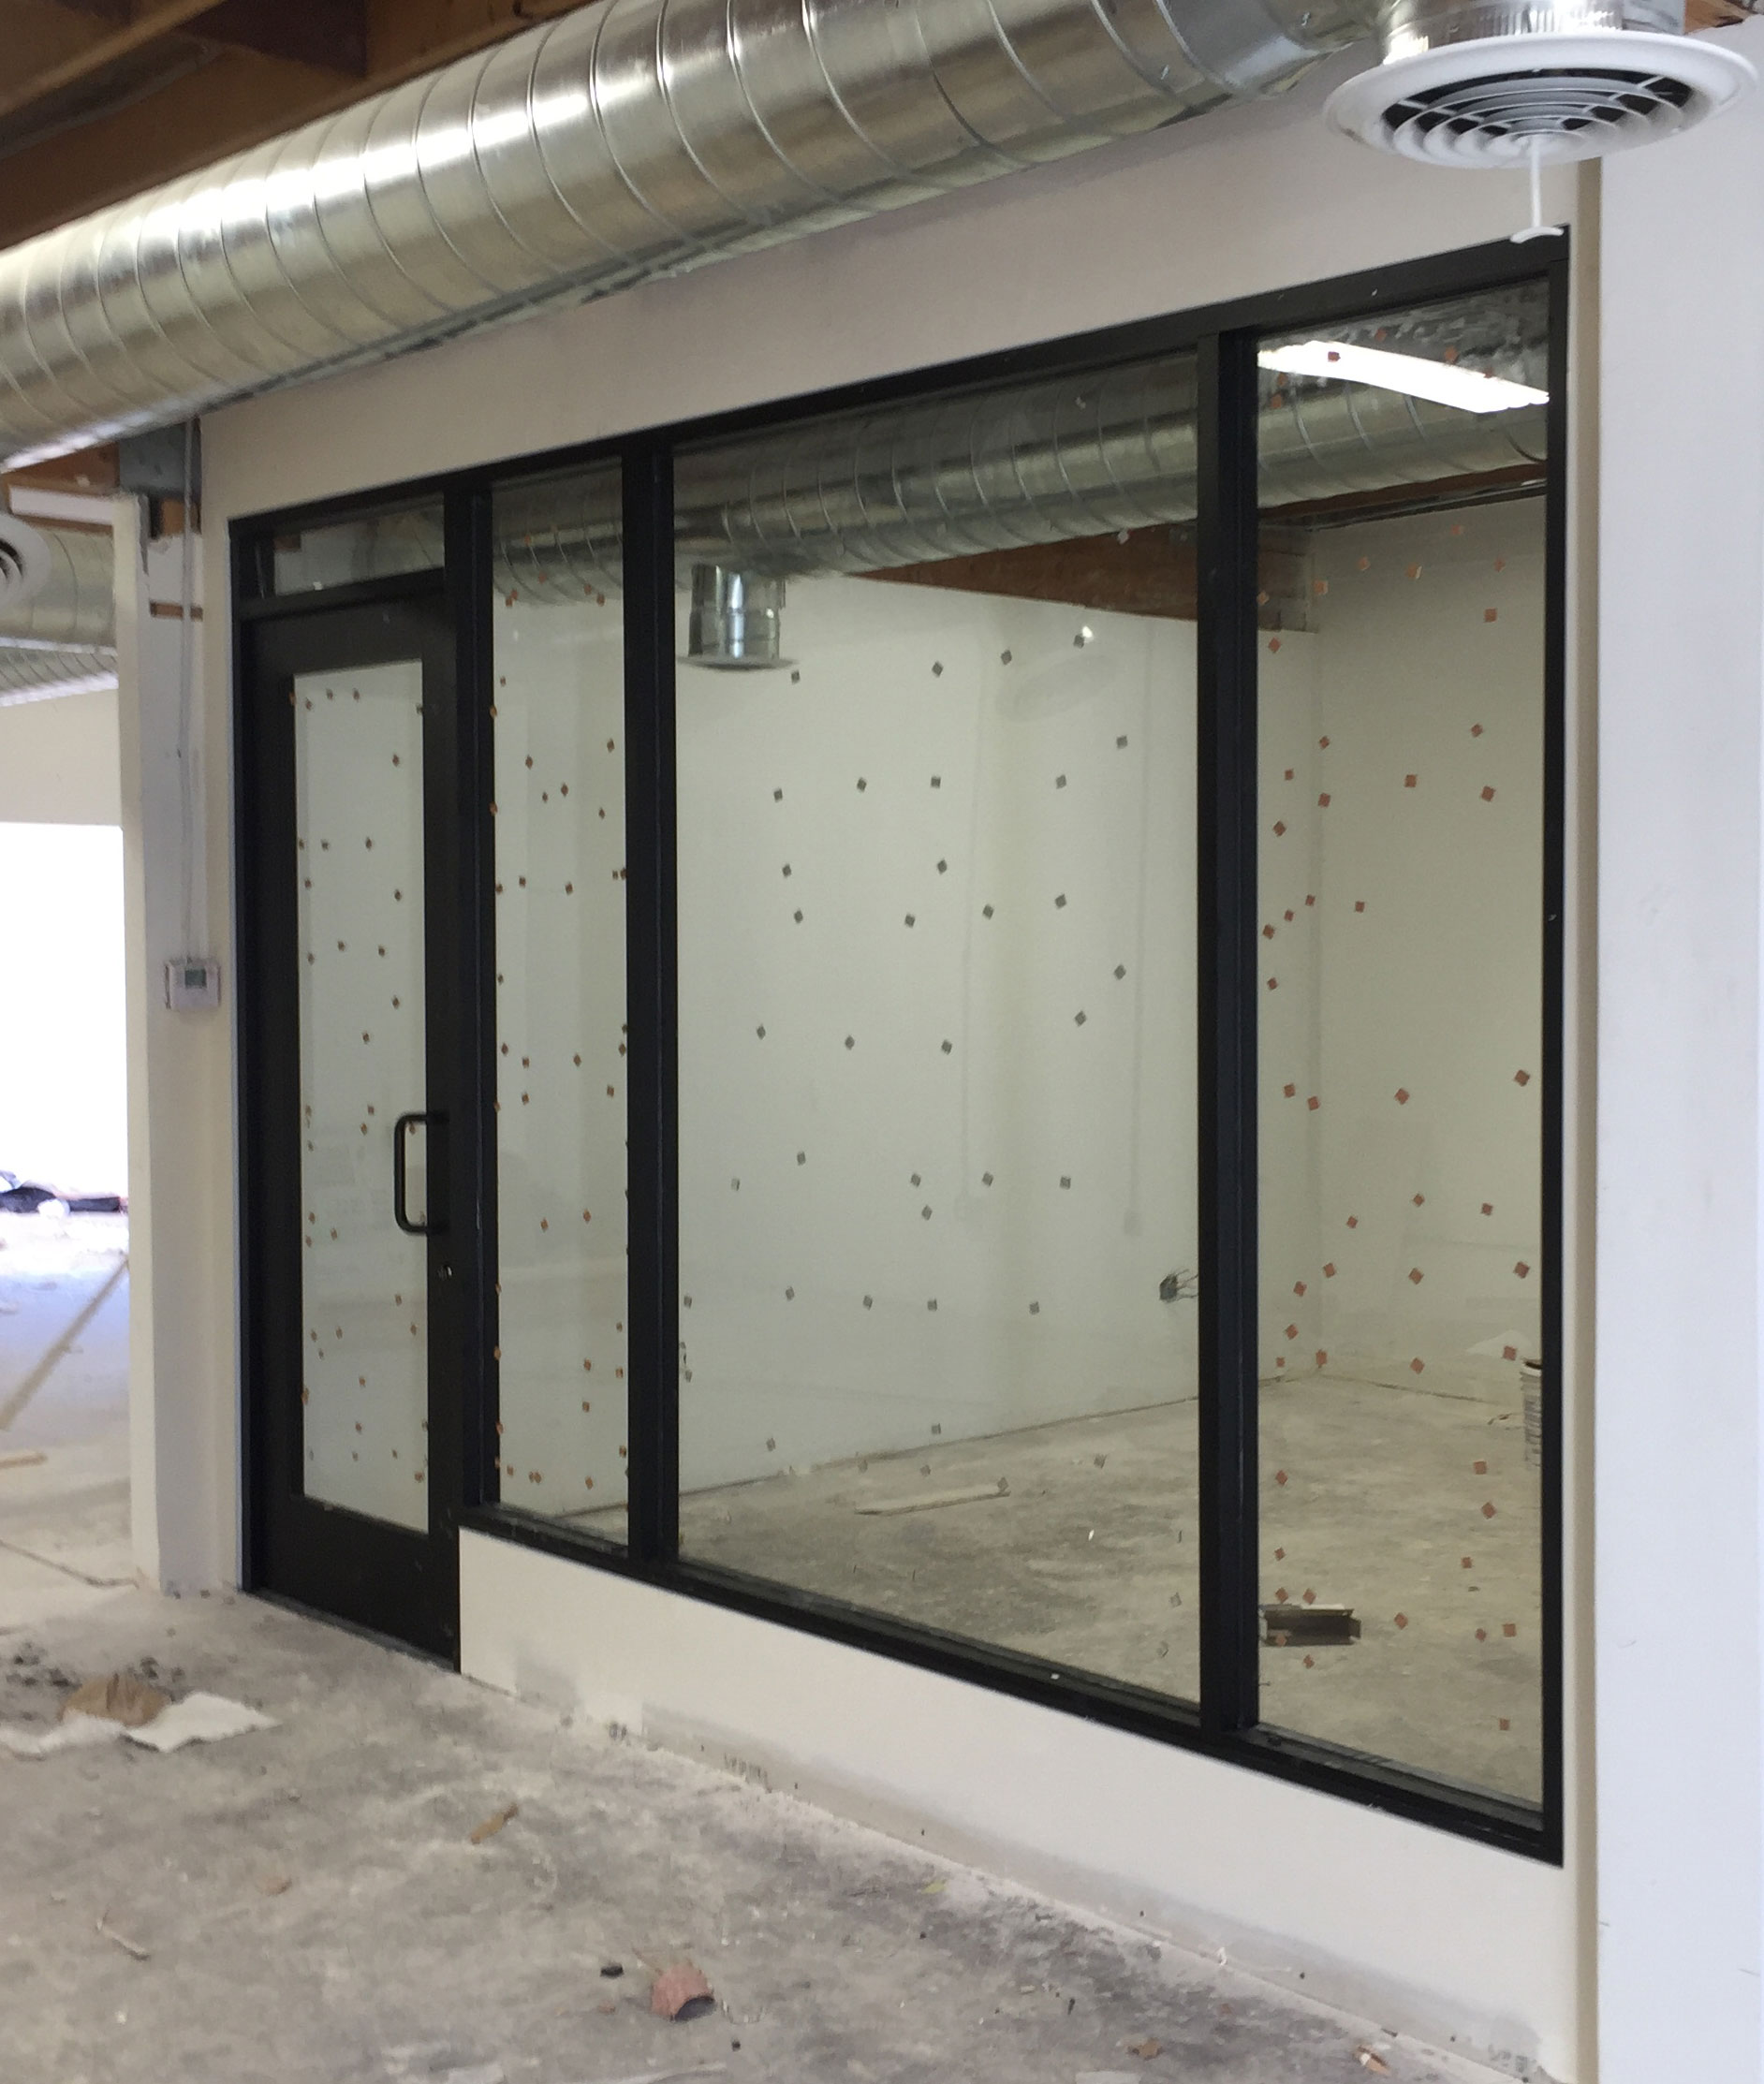 Storefronts Aaa Glass And Mirror Inc Showers Glass Mirrors